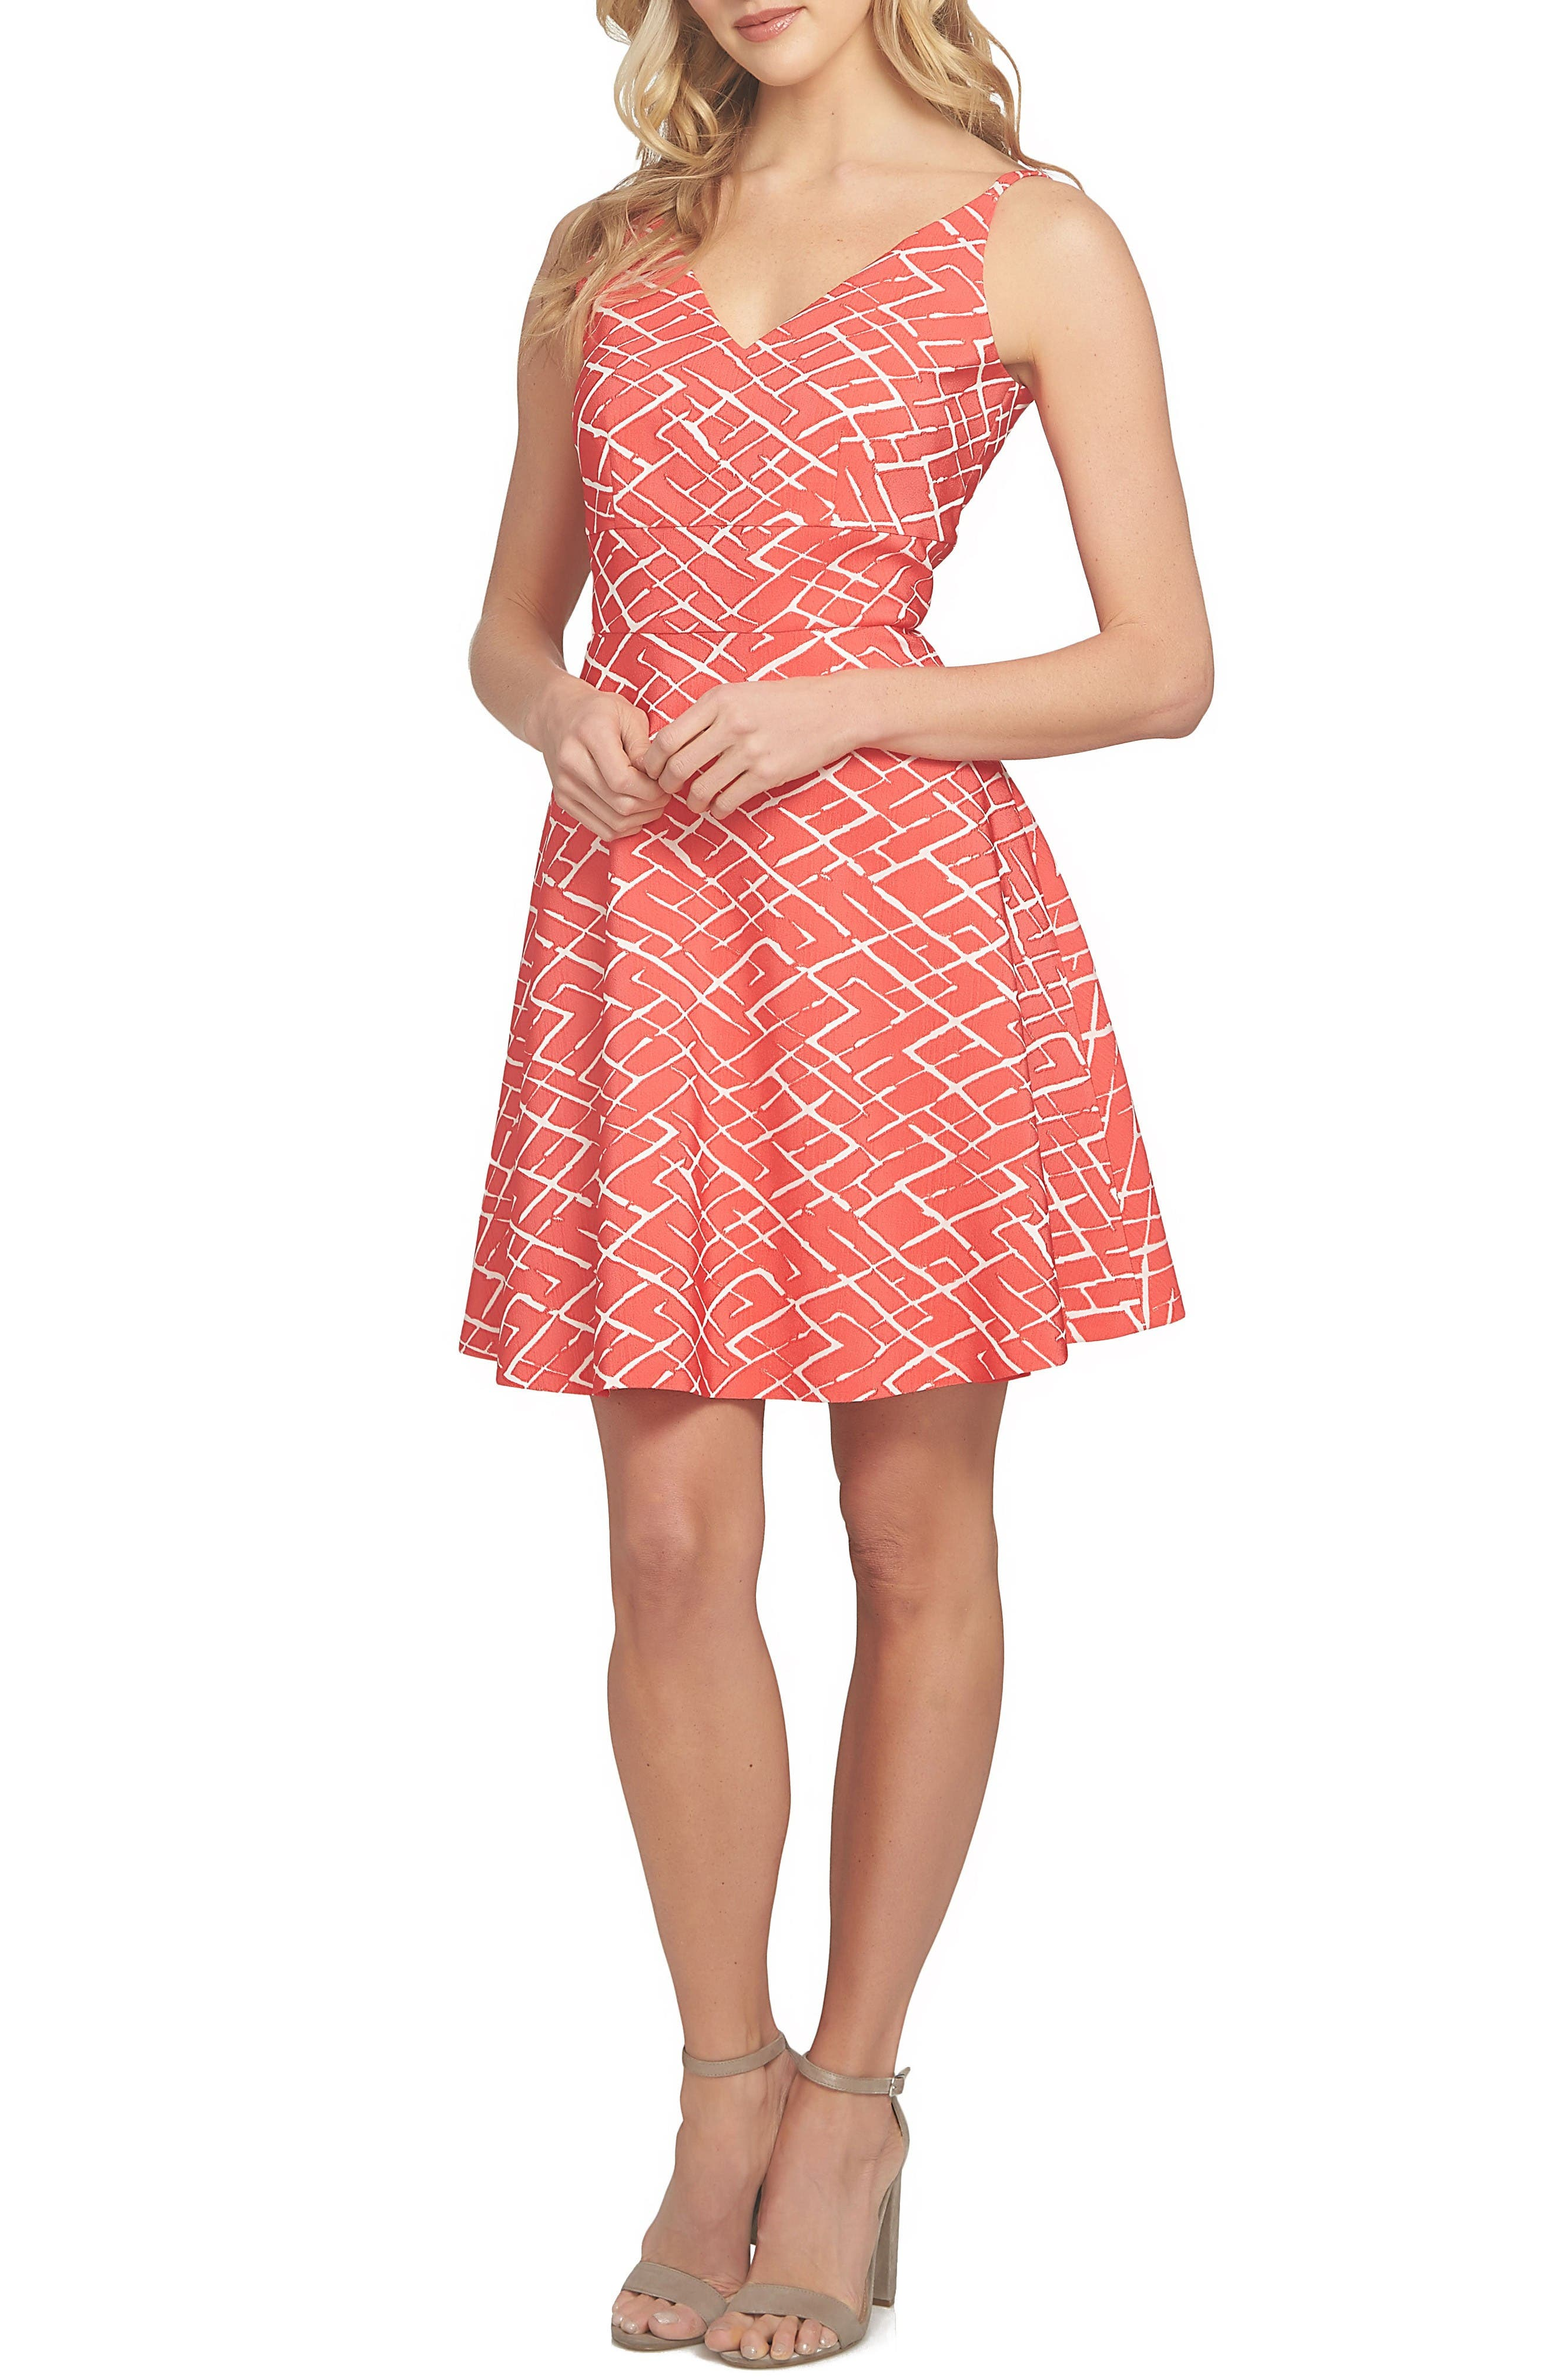 Miley Print Fit & Flare Dress,                         Main,                         color, Fiery Red